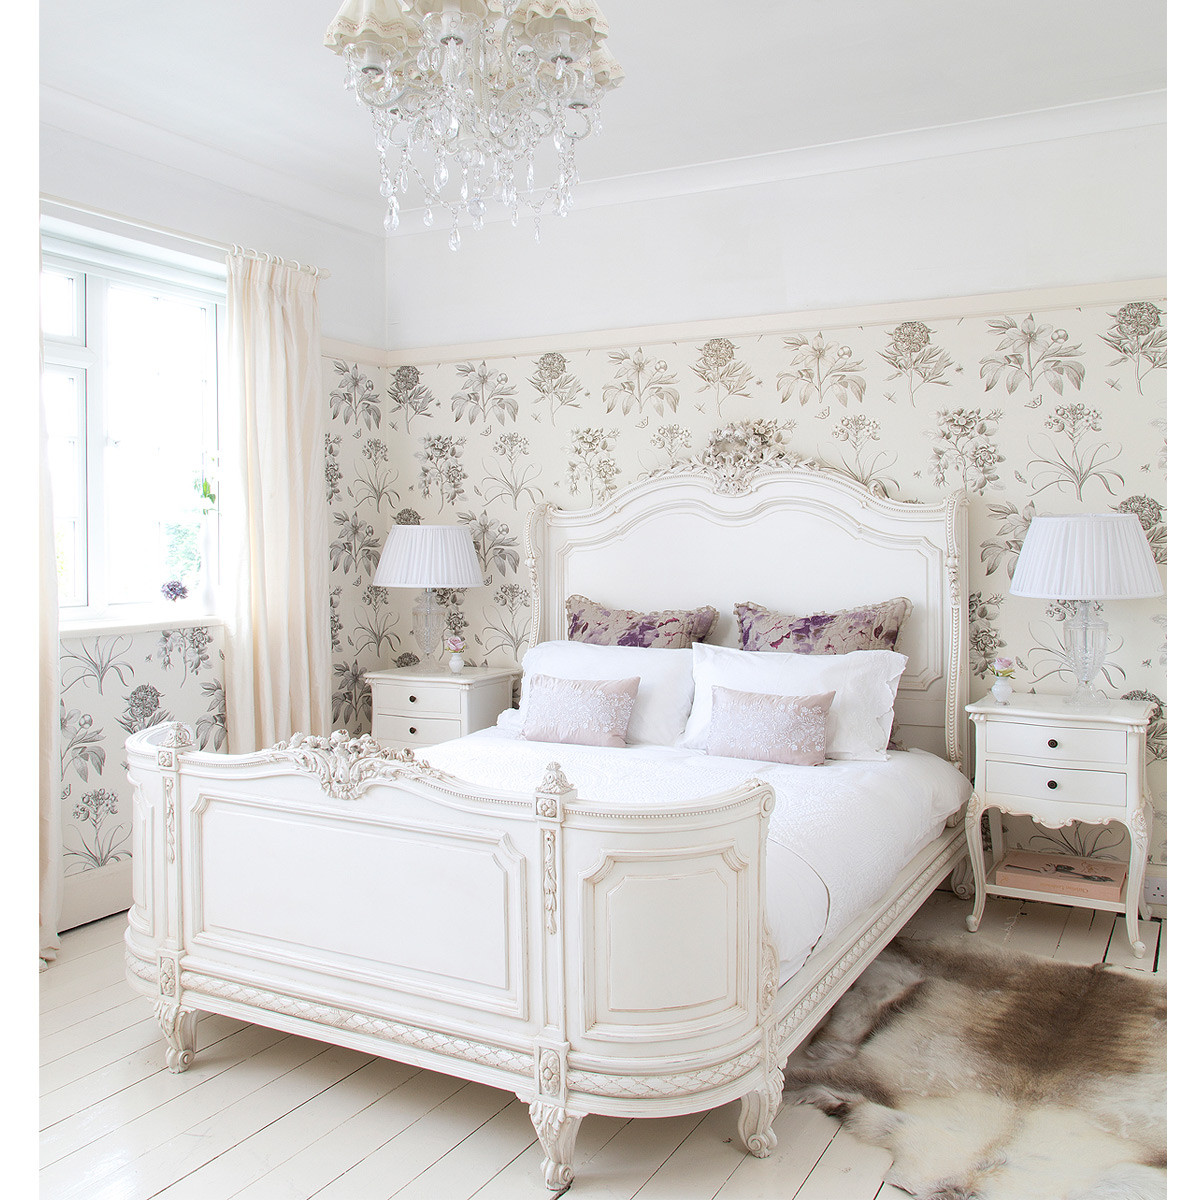 Best ideas about Bedroom In French . Save or Pin French bed rafinament elegance and romance in your bedroom Now.